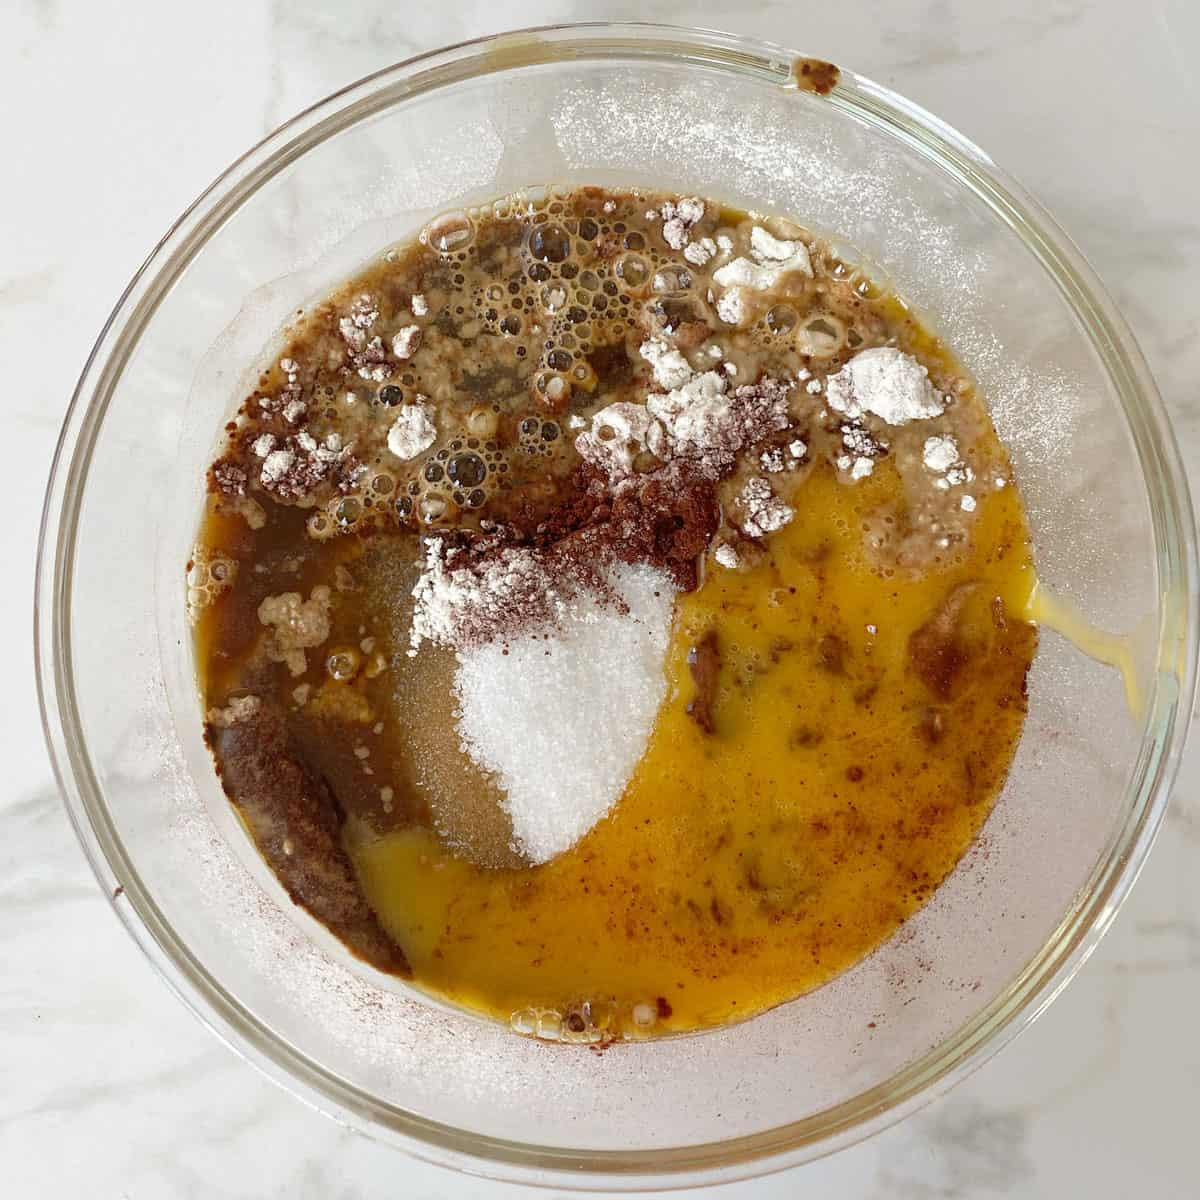 Dry ingredients and melted butter for Chocolate Mousse Cake in a glass bowl.